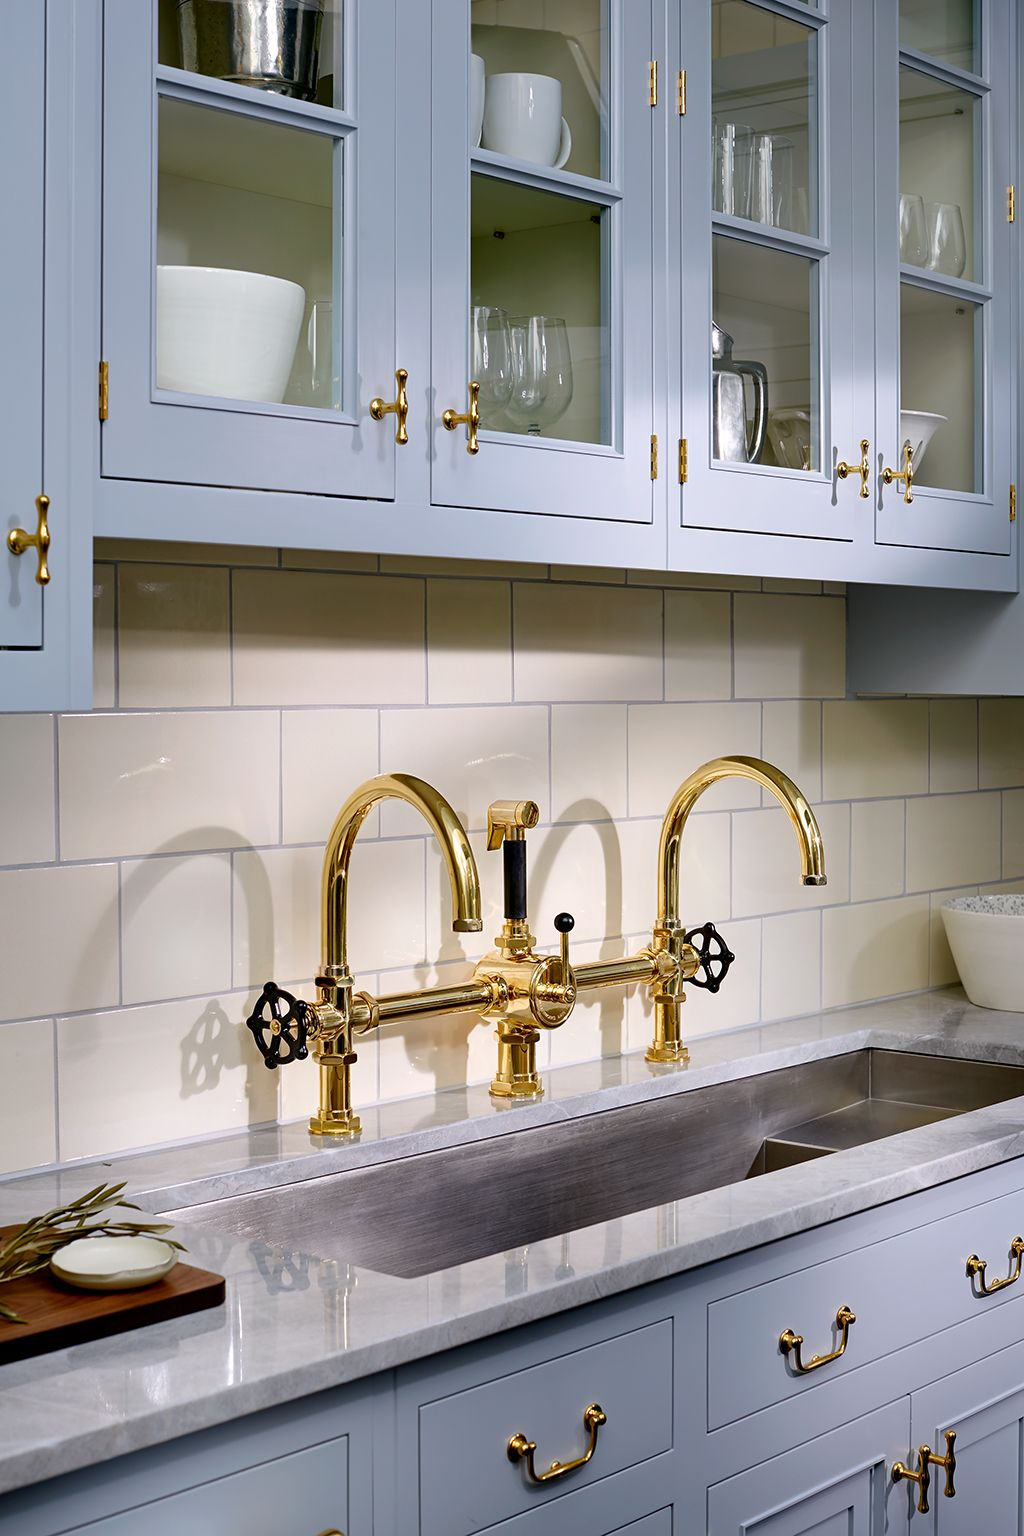 Our Traditional Belden Kitchen Cabinetry Mixed With An Industrial Brass Kitchen Fauc Brass Kitchen Faucet Black Kitchen Faucets Replacing Kitchen Countertops